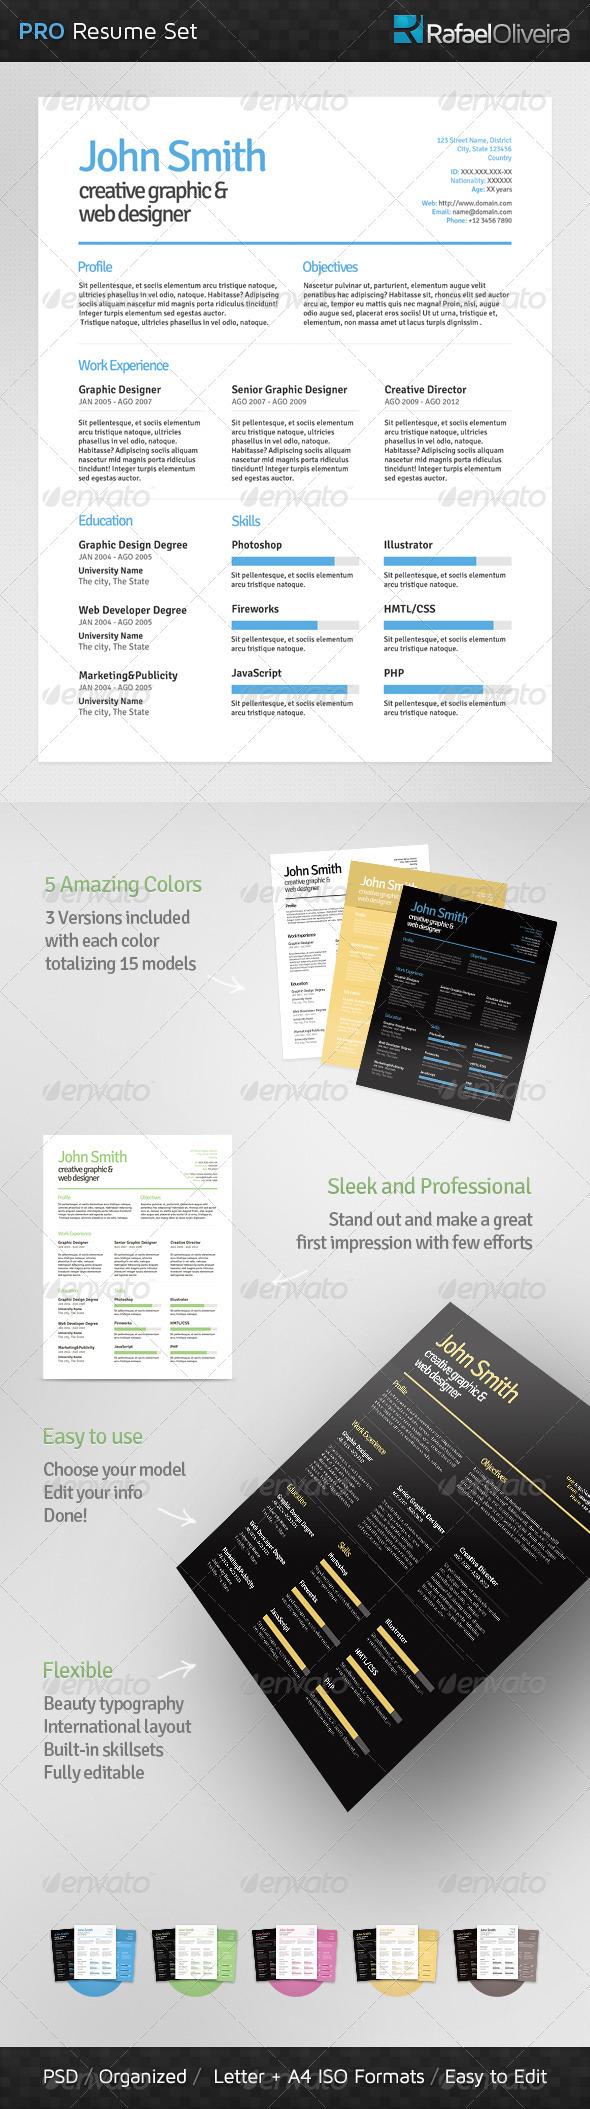 GraphicRiver Pro Resume Set 3520204